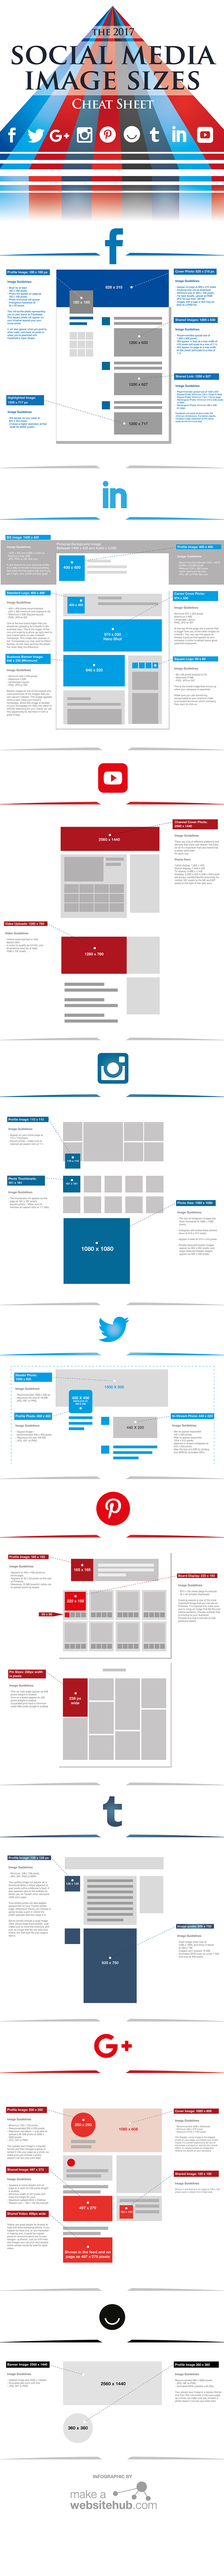 Create perfect social media images with this cheat sheet